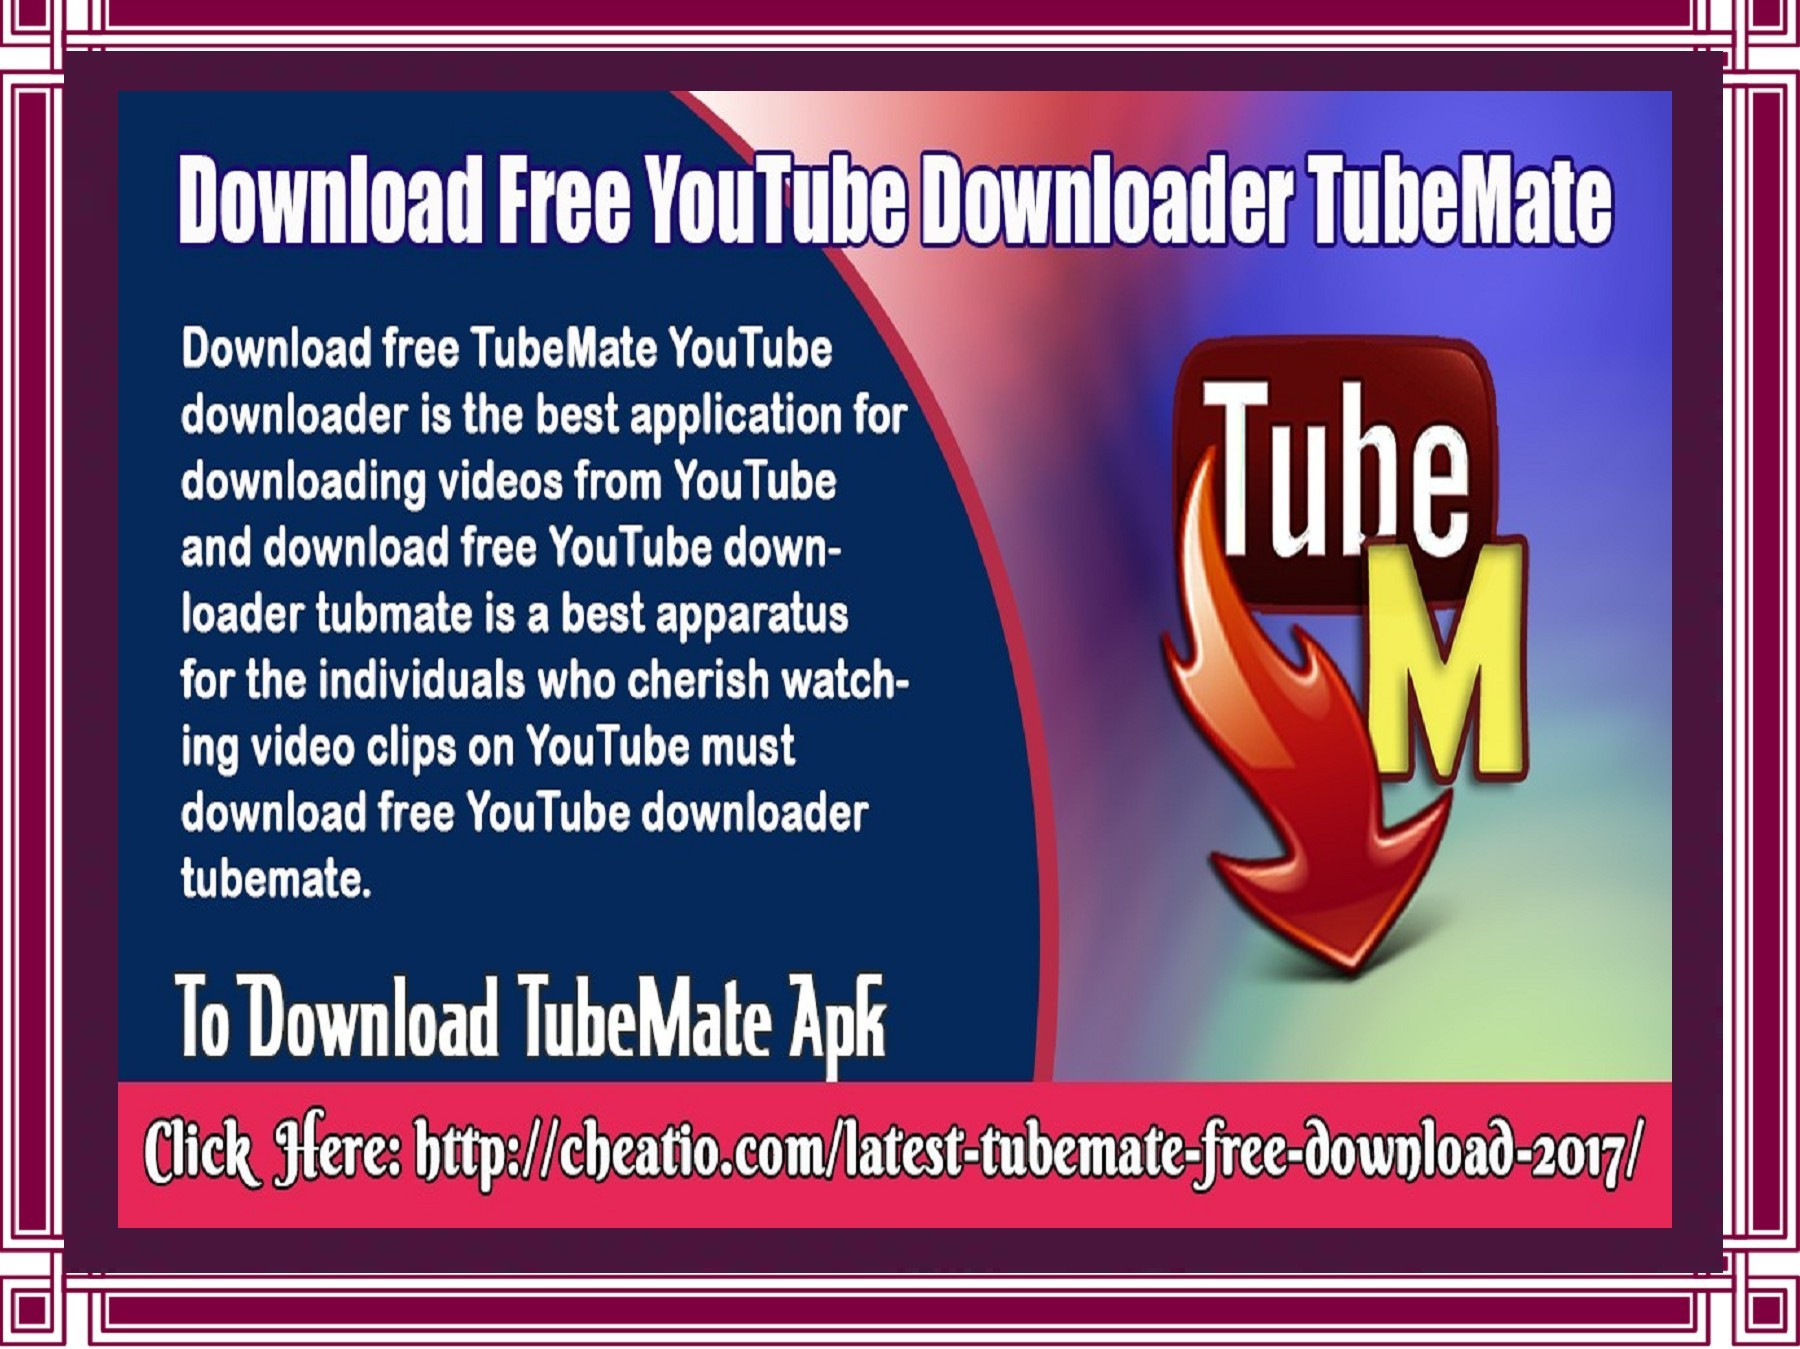 Download Free YouTube Downloader TubeMate | PubHTML5